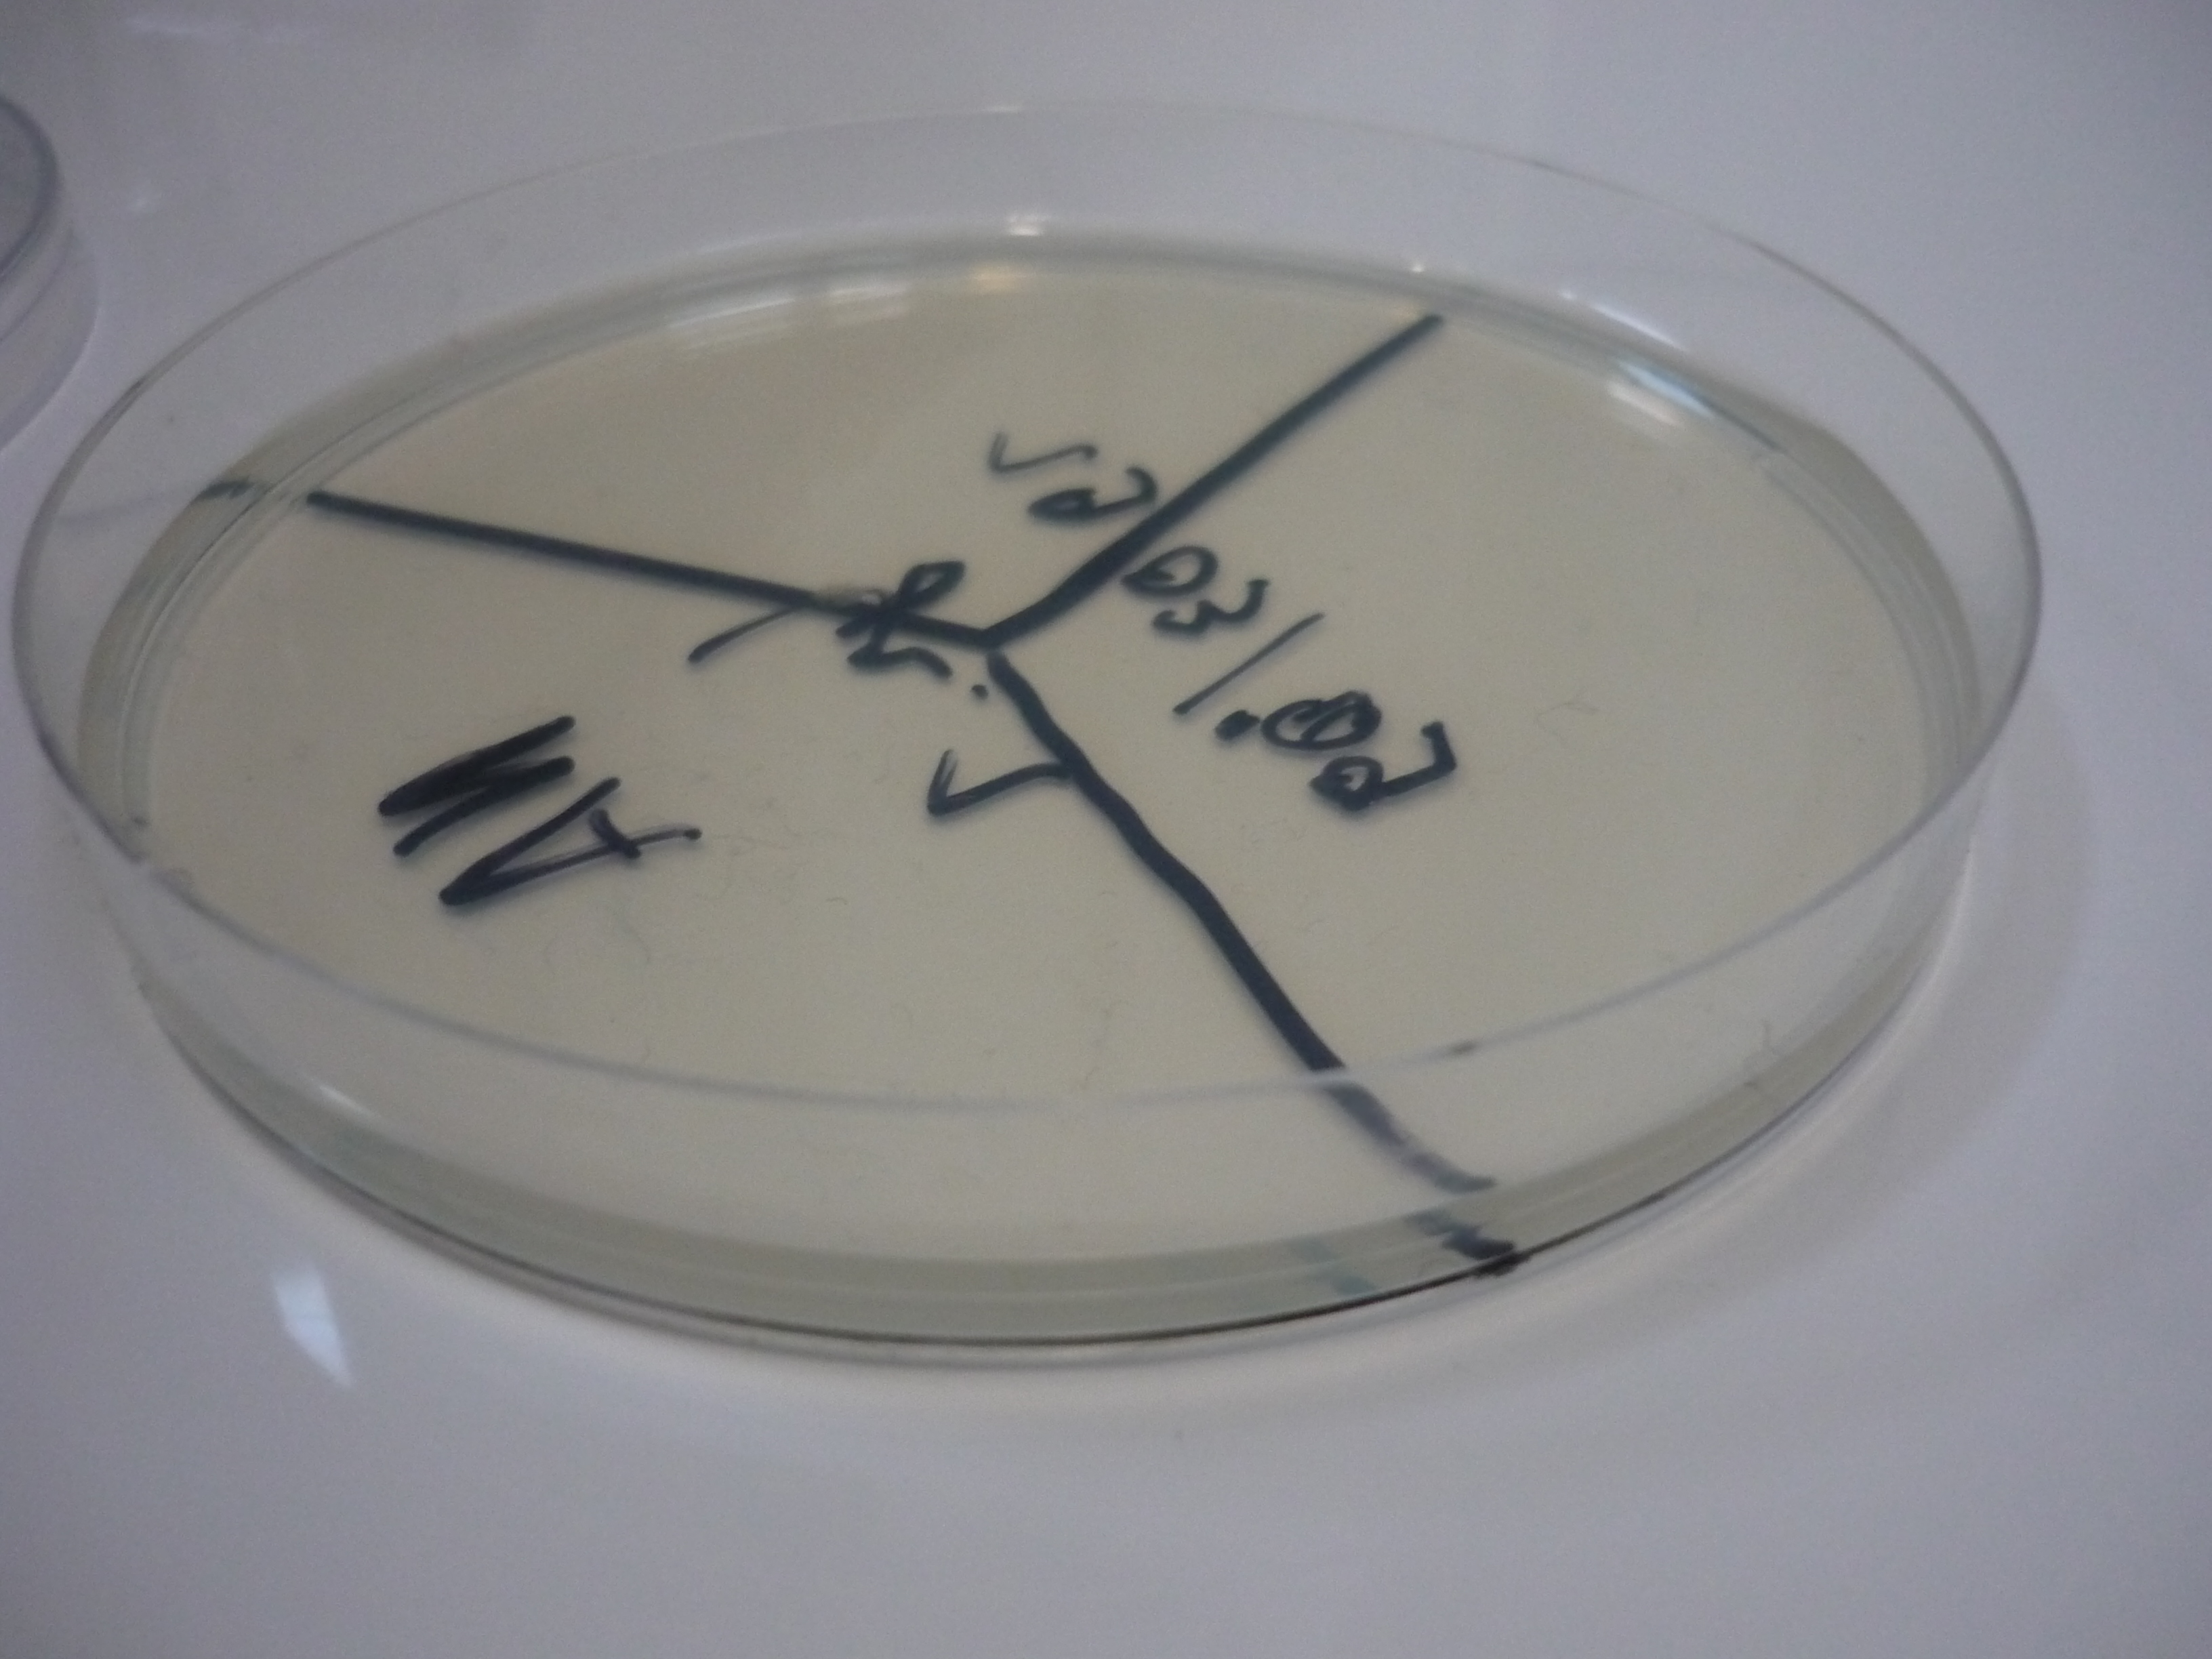 microbiology lab report on staphylococcus aureus and e coli Microbiology overview  in clusters coagulase (+): staphylococcus aureus  the ucla microbiology laboratory utilizes standard reference methods for determining.